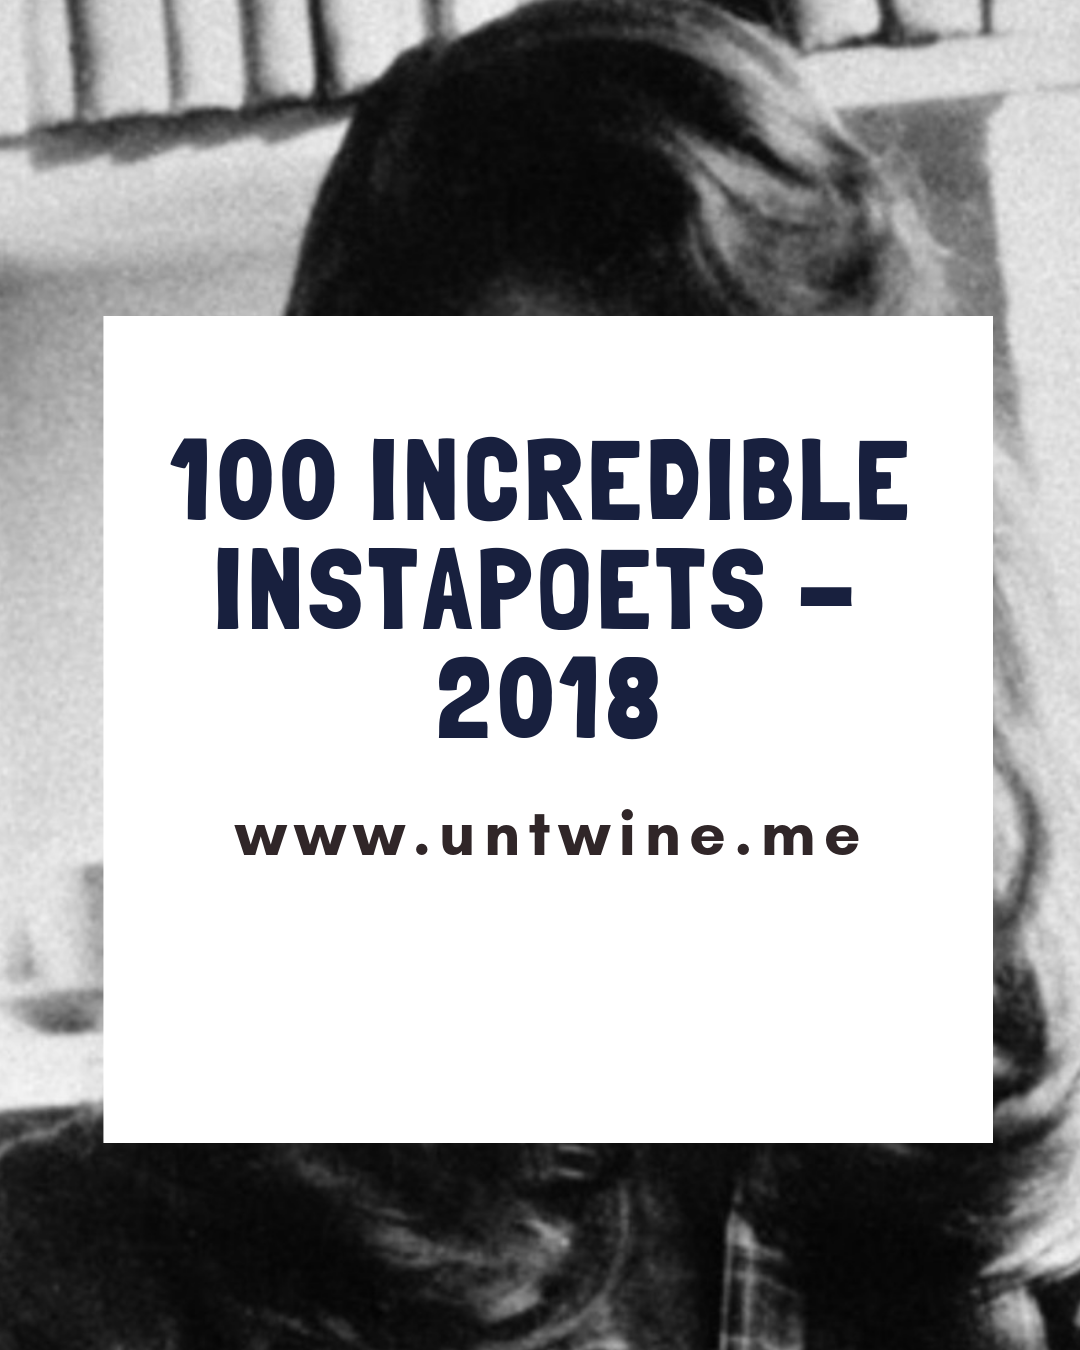 100 INCREDIBLE INSTAPOETS OF 2018: ARIA EMBER NIKOL